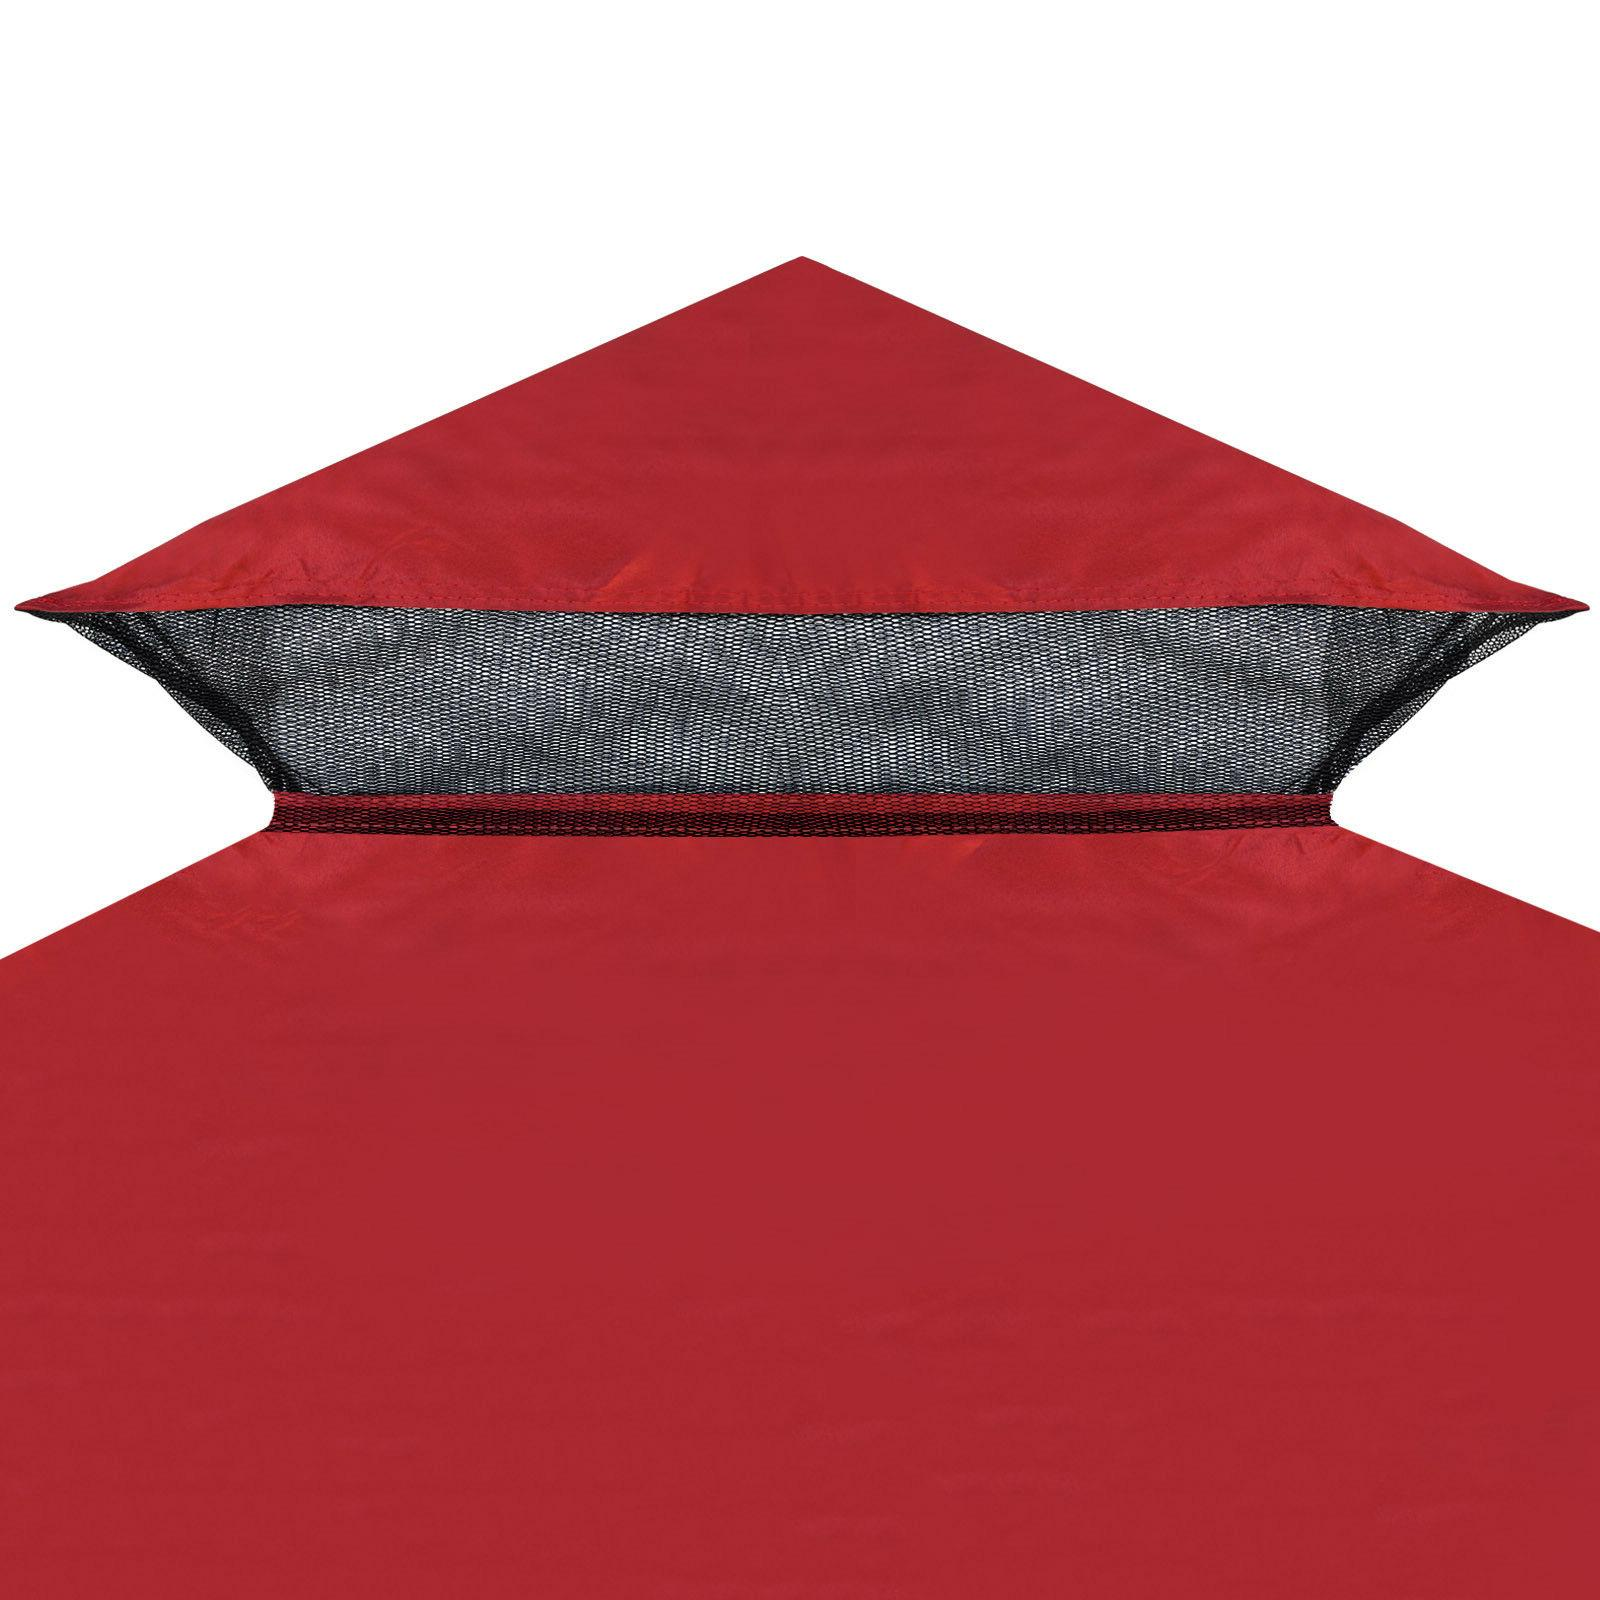 New Replacement Canopy Top Pavilion Tent Cover UV+